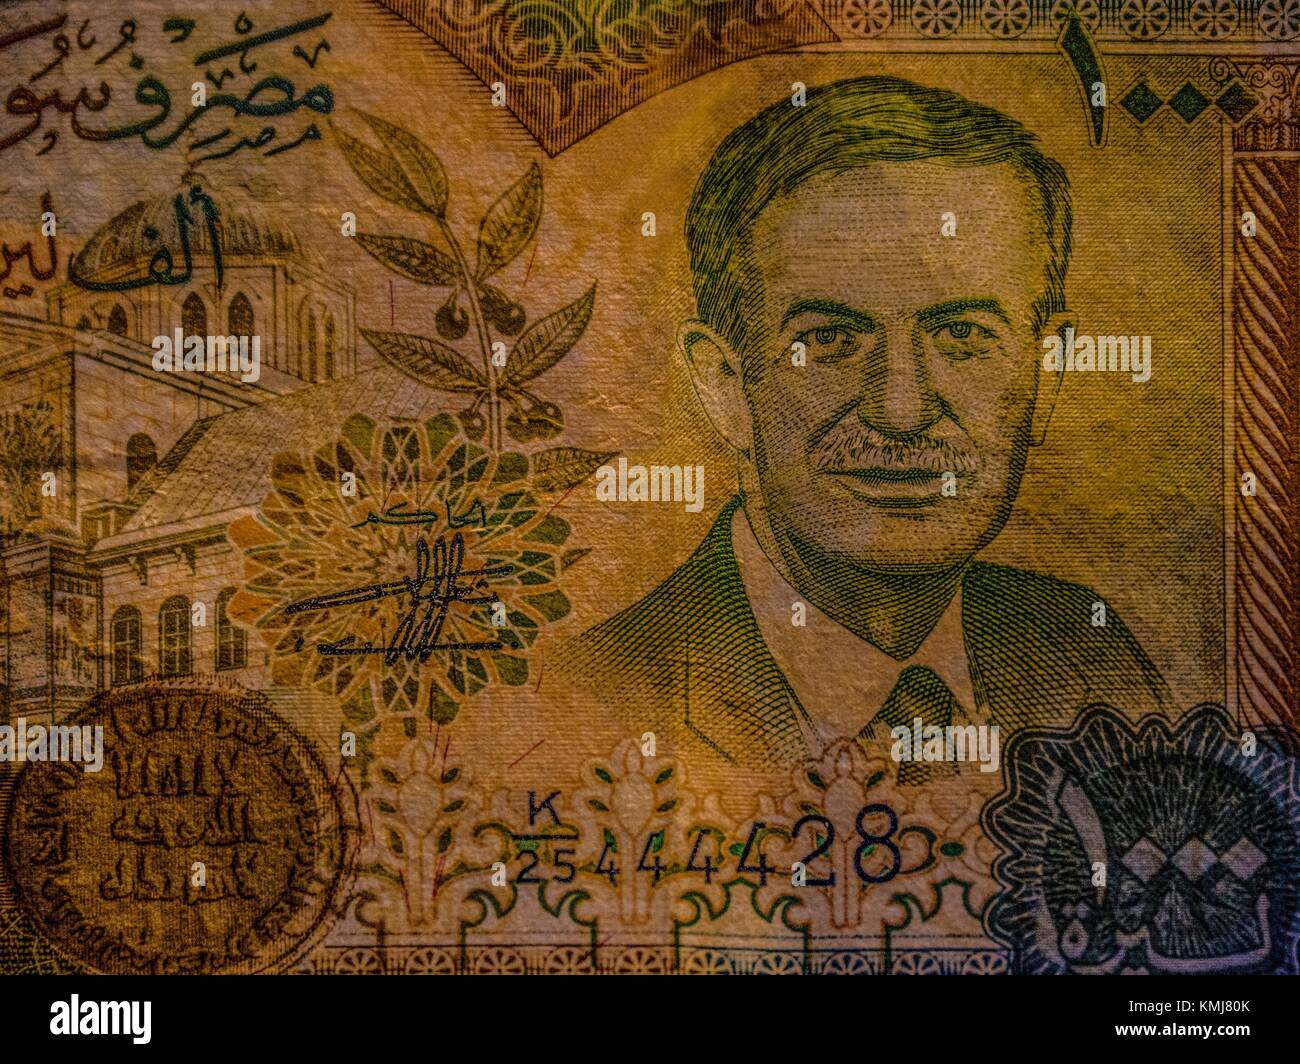 Syrian banknote showing portrait of Hafez al-Assad - Stock Image